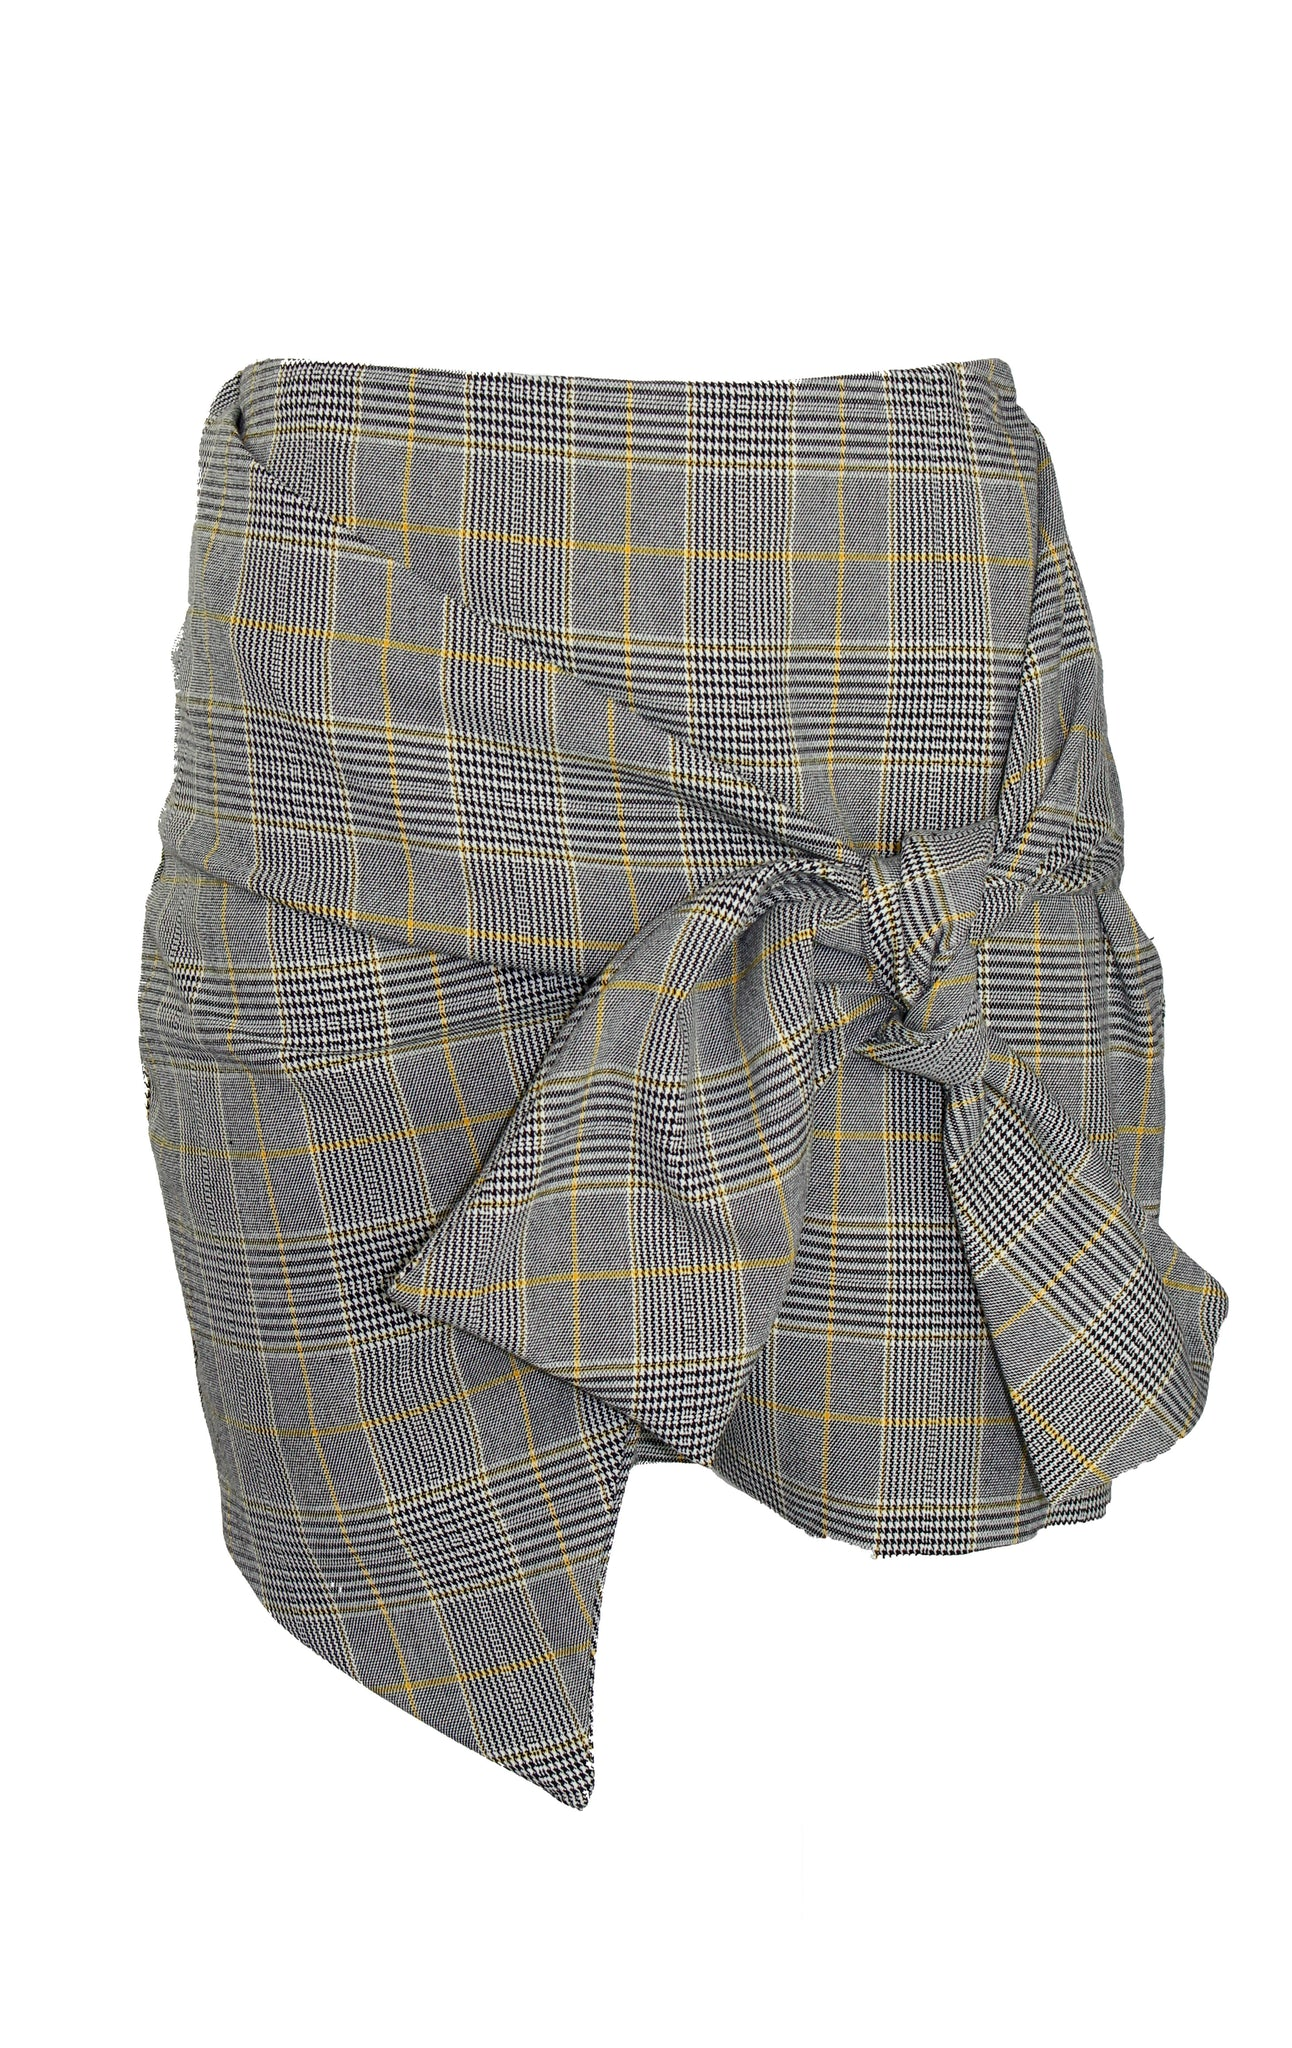 Pulaski Plaid Skirt